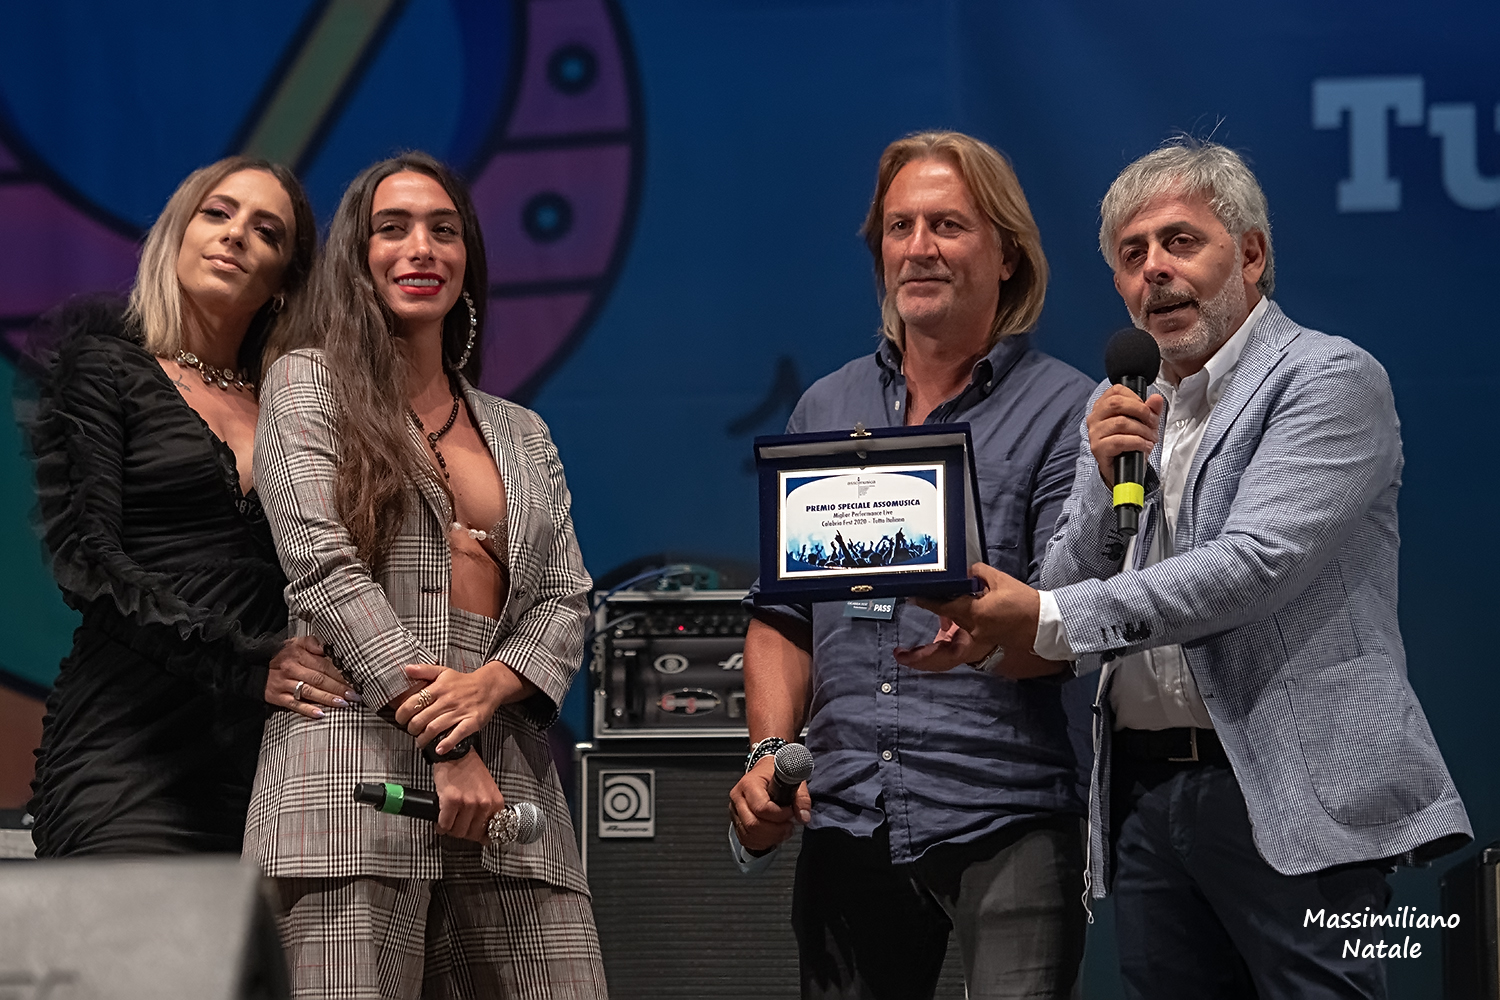 Click to enlarge image 22 - Premio Assomusica a Ellynora.jpg